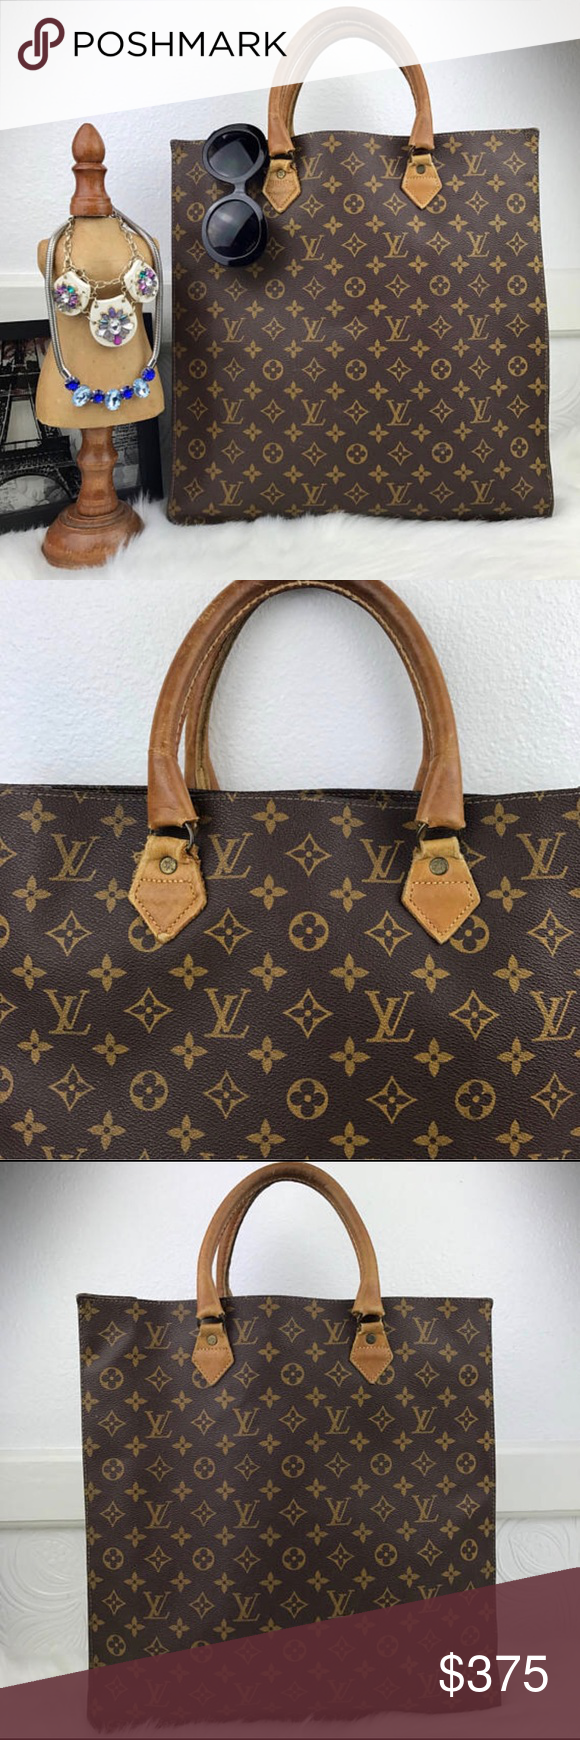 21d049e4ebc1 LOUIS VUITTON French Company Sac Plat Shopper Tote French Company Louis  Vuitton Sac Plat Tote Bag with Top Handles. The bag is in grea…